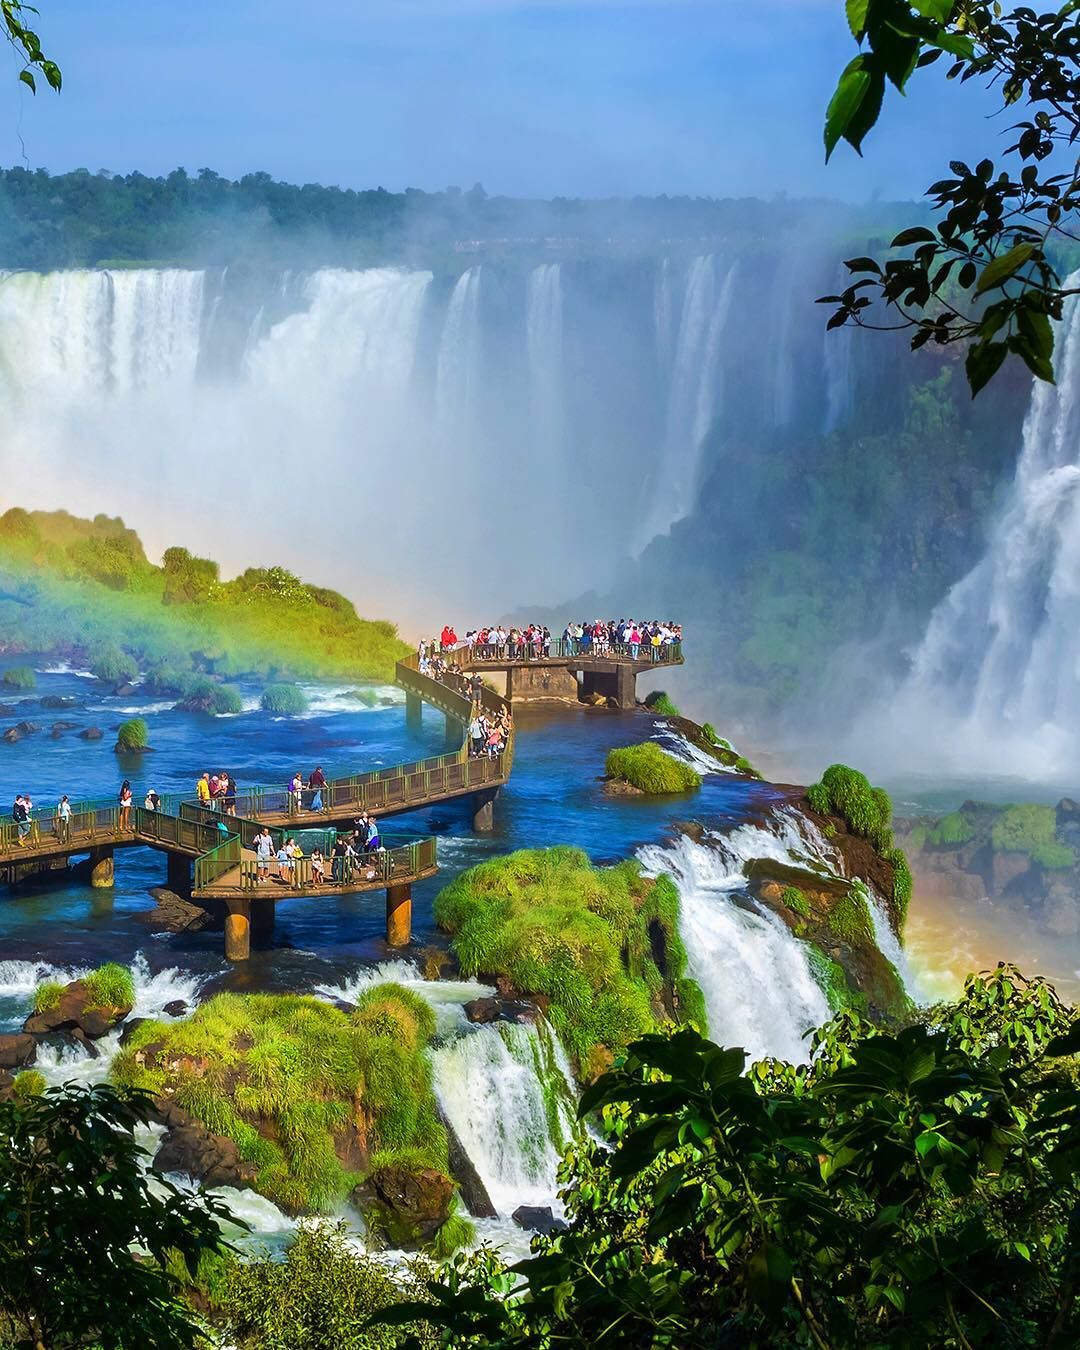 If youre visiting the Iguazu Falls travelers say you cant